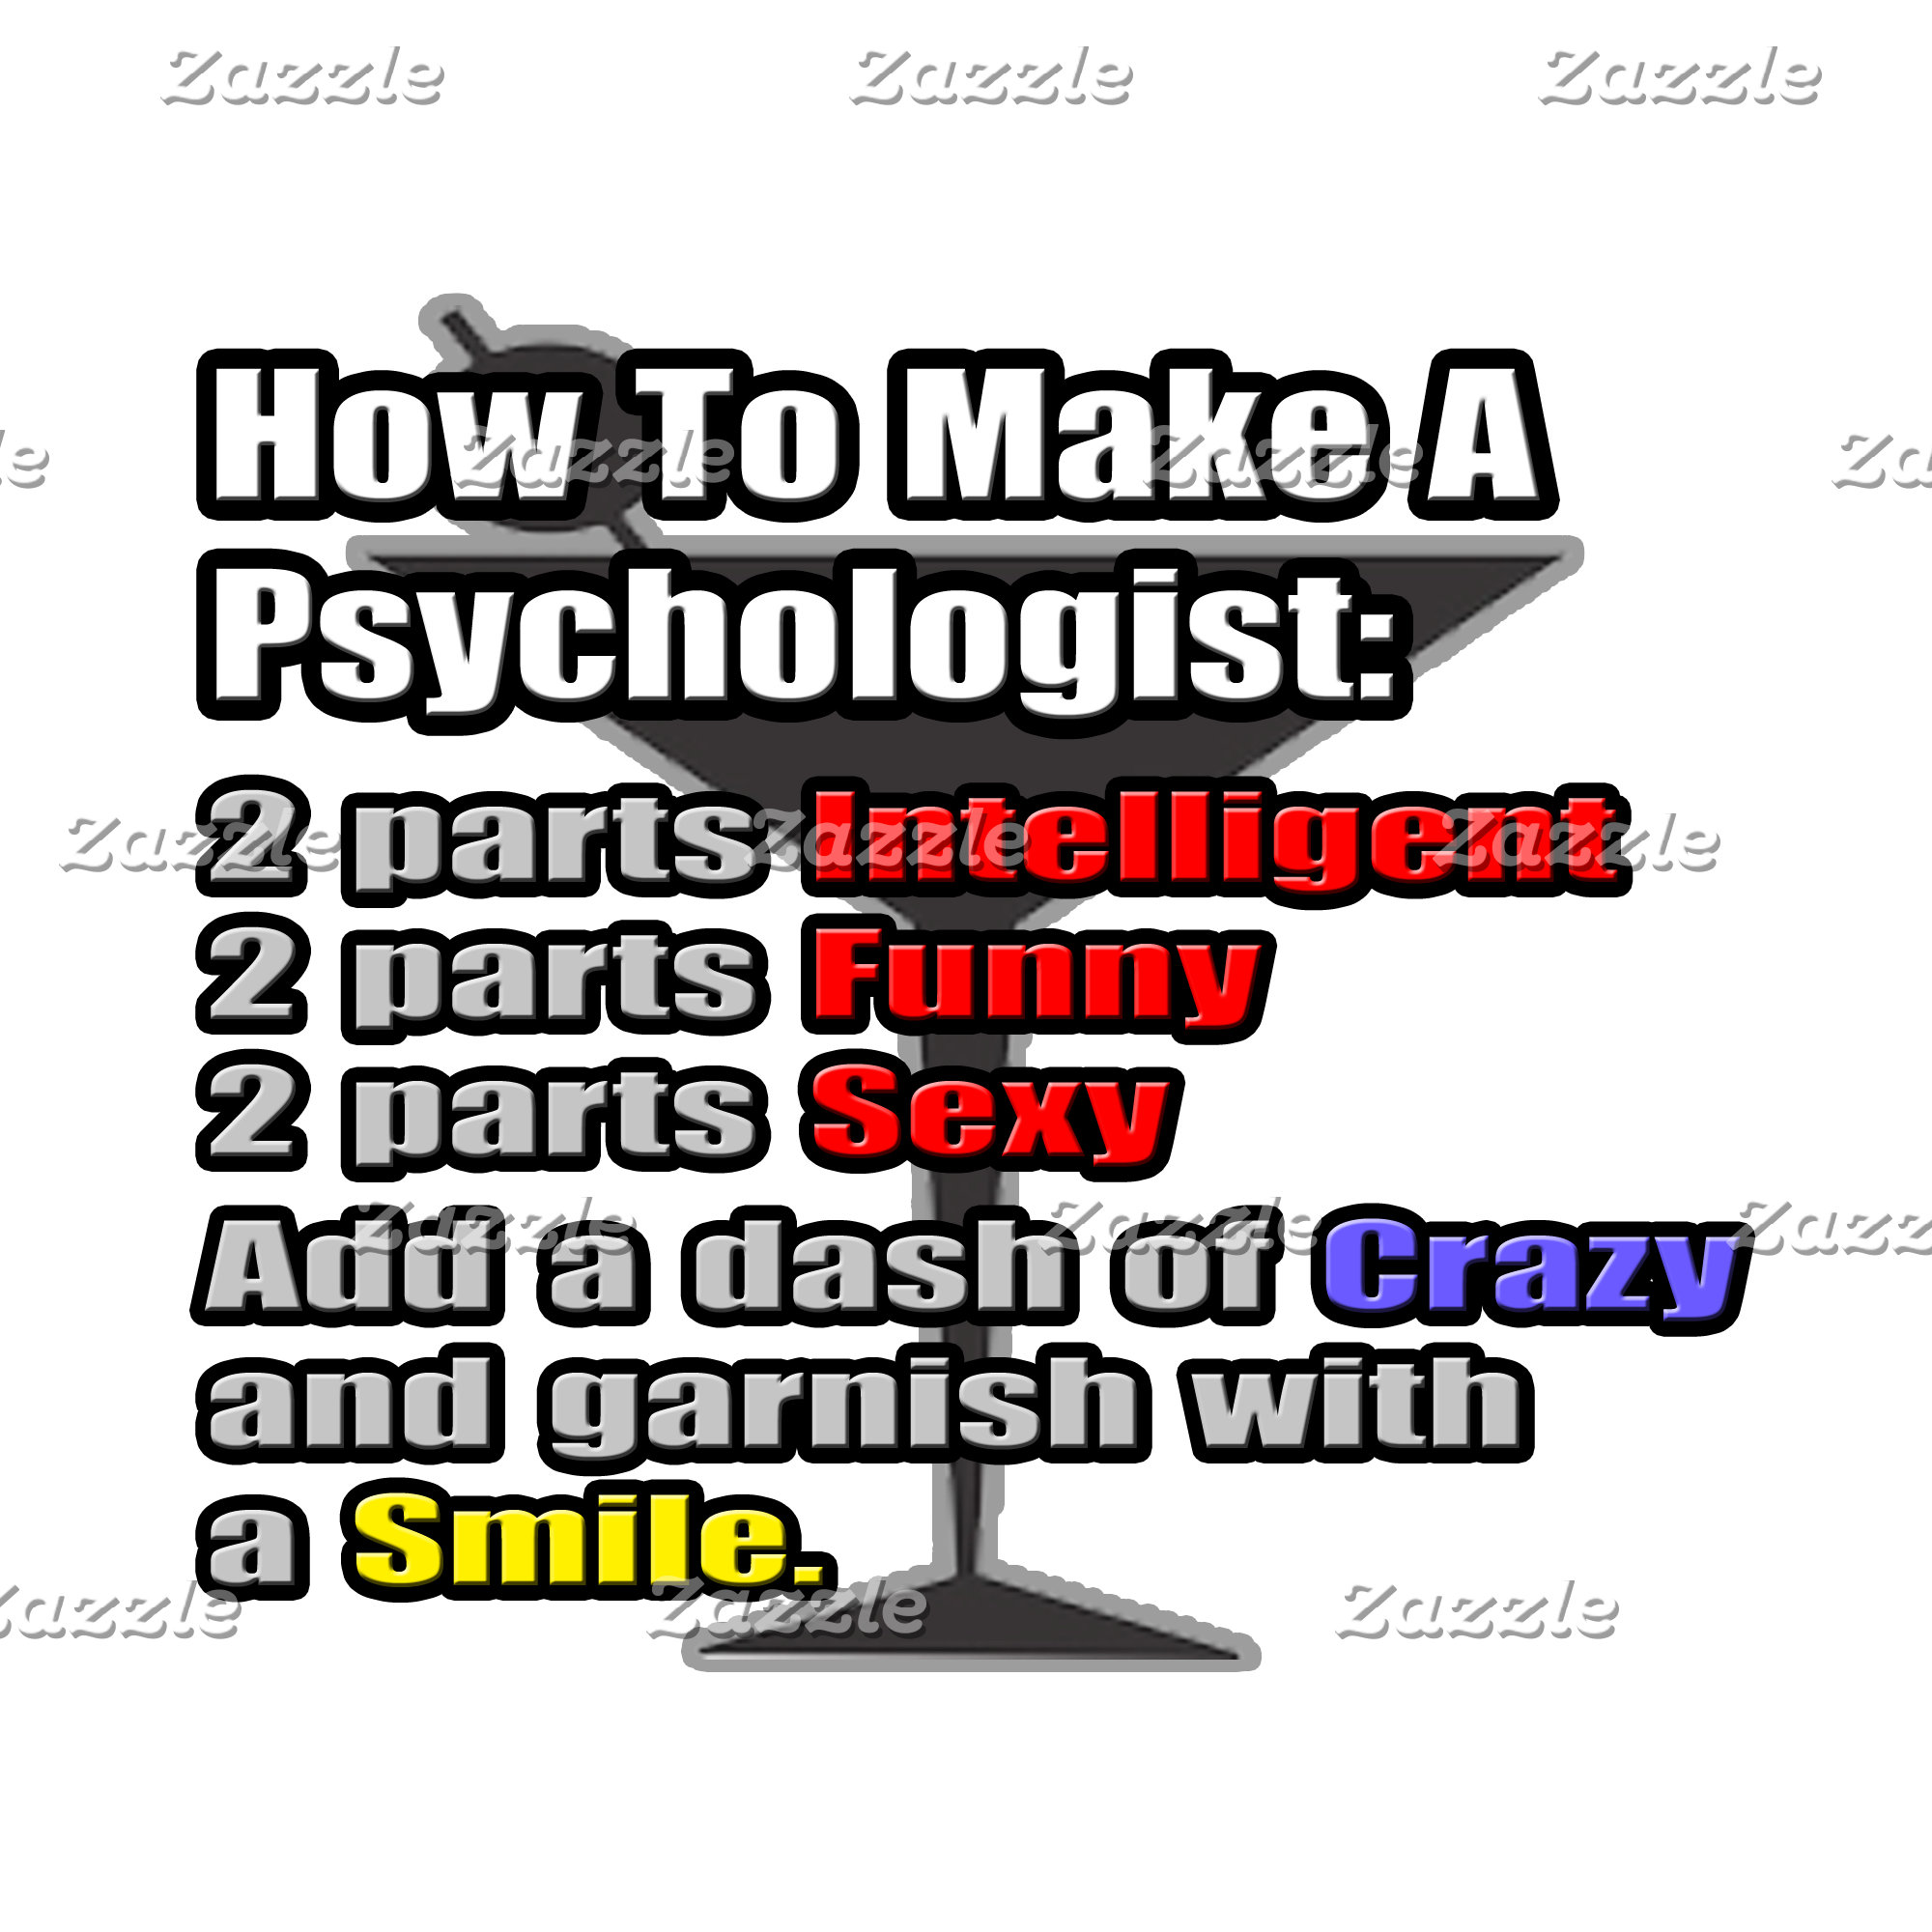 How To Make a Psychologist